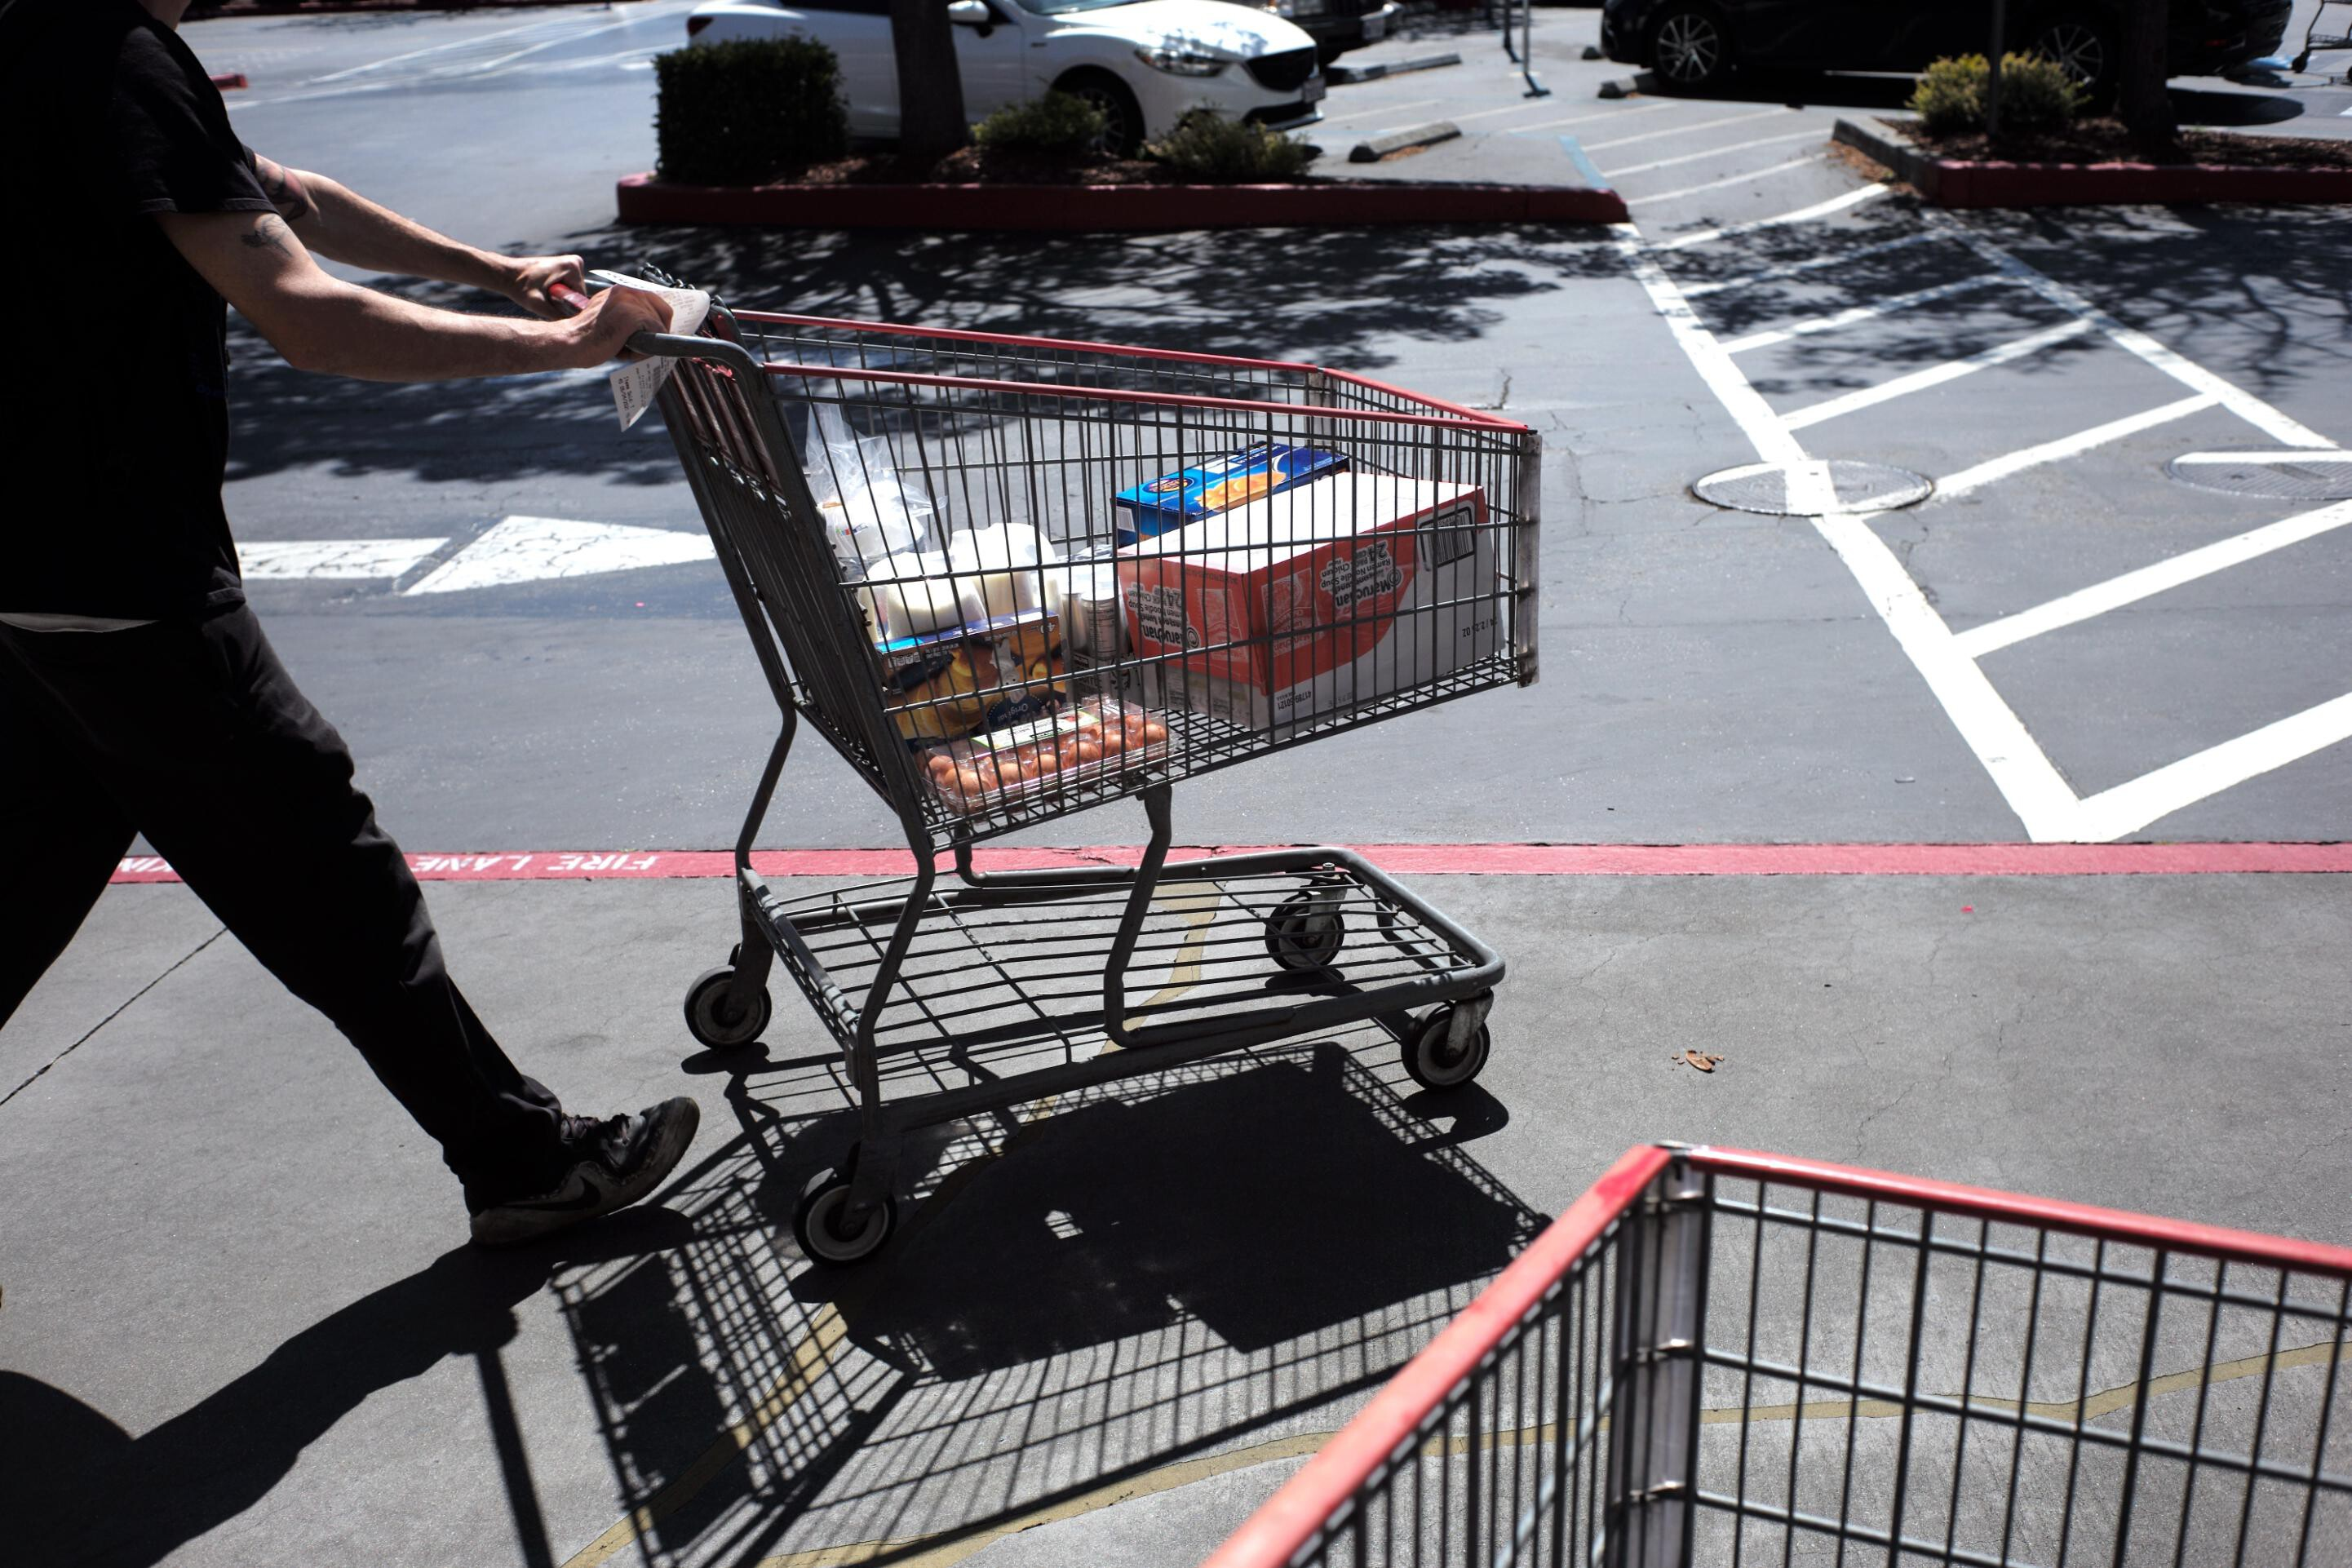 3 things making the American consumer miserable